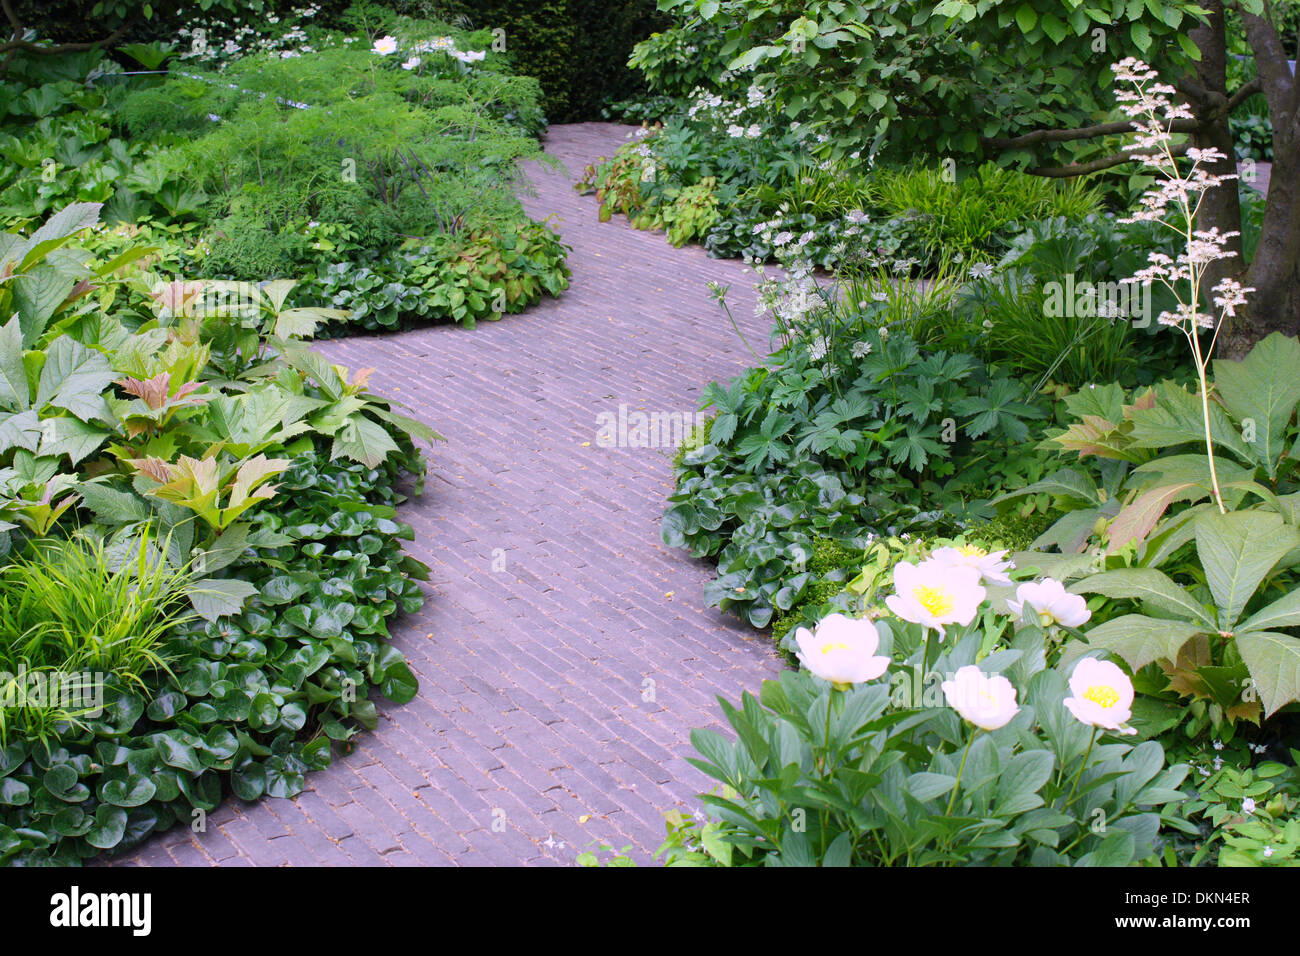 Stone paving in between green plants in a garden Stock Photo